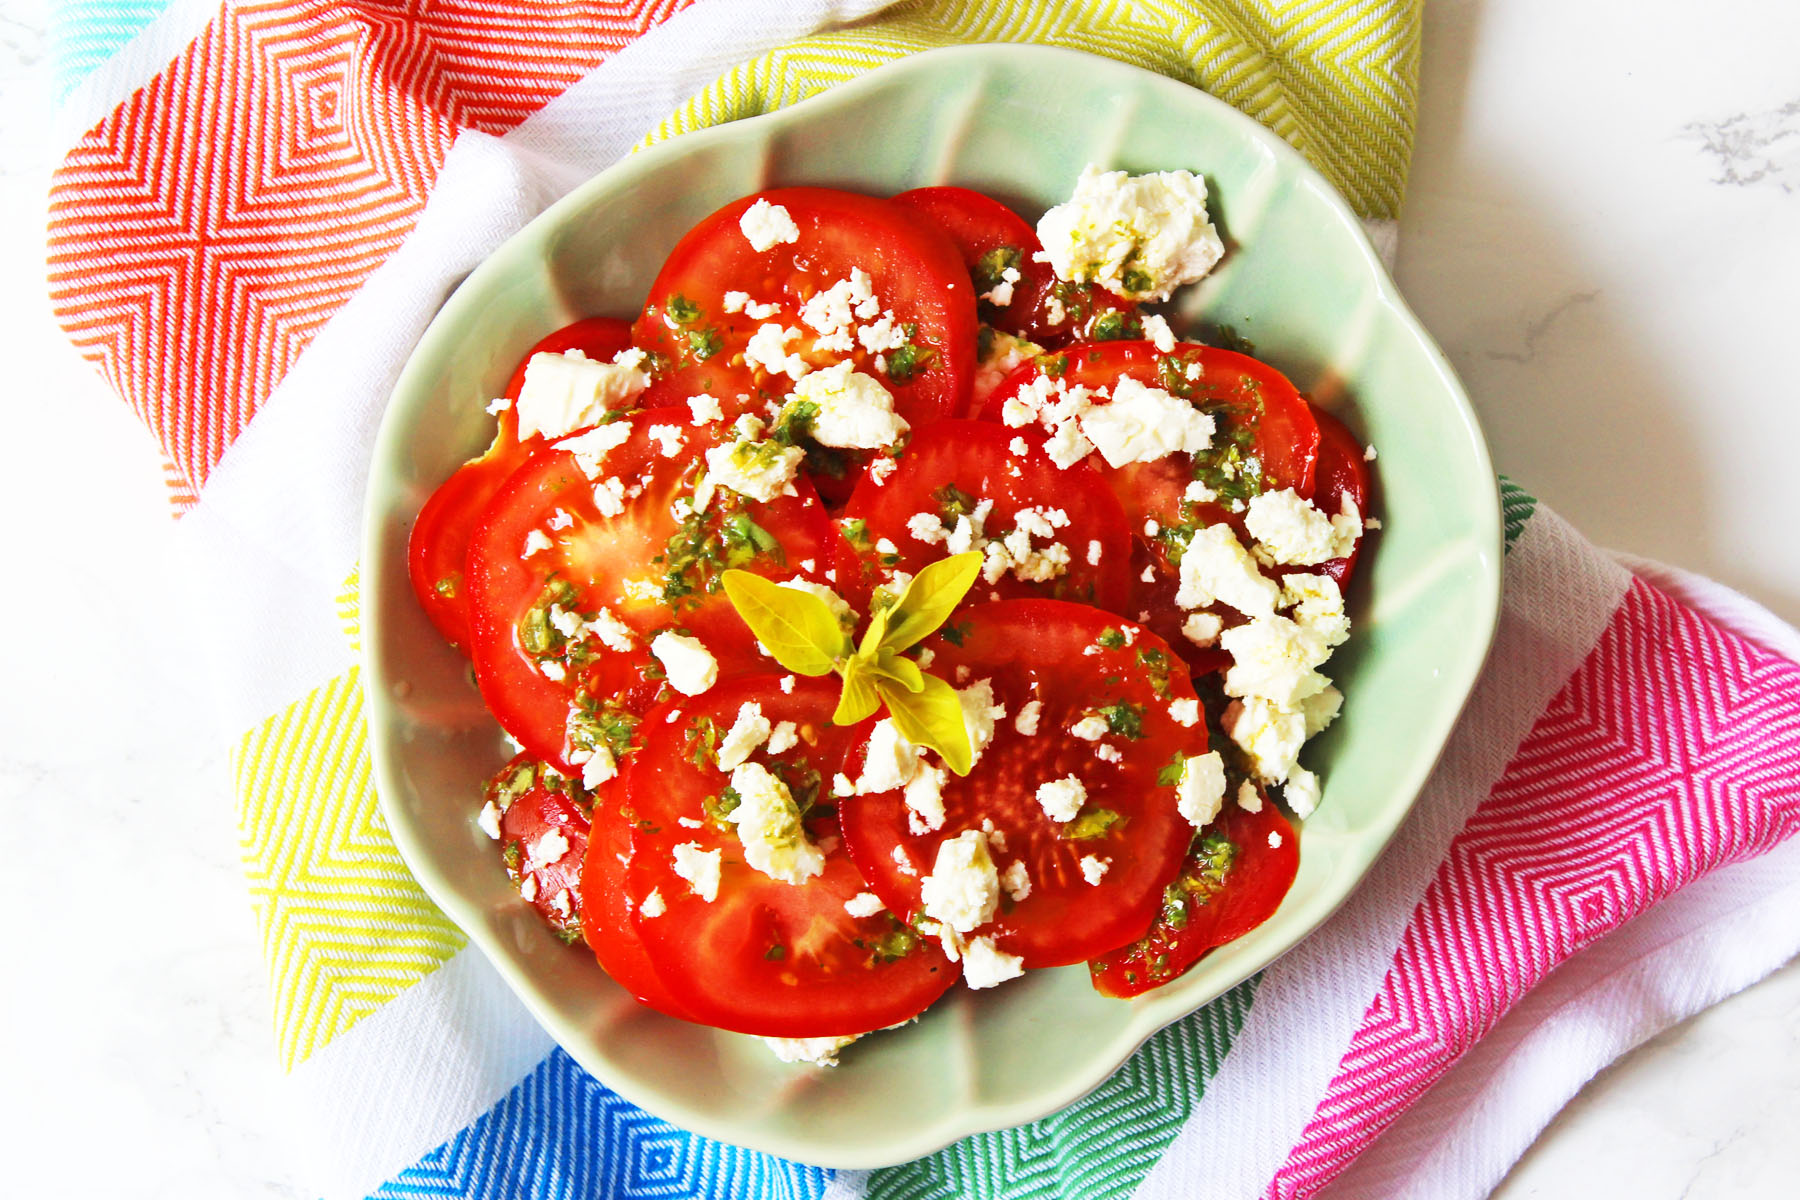 Tomato, Feta and Oregano Salad